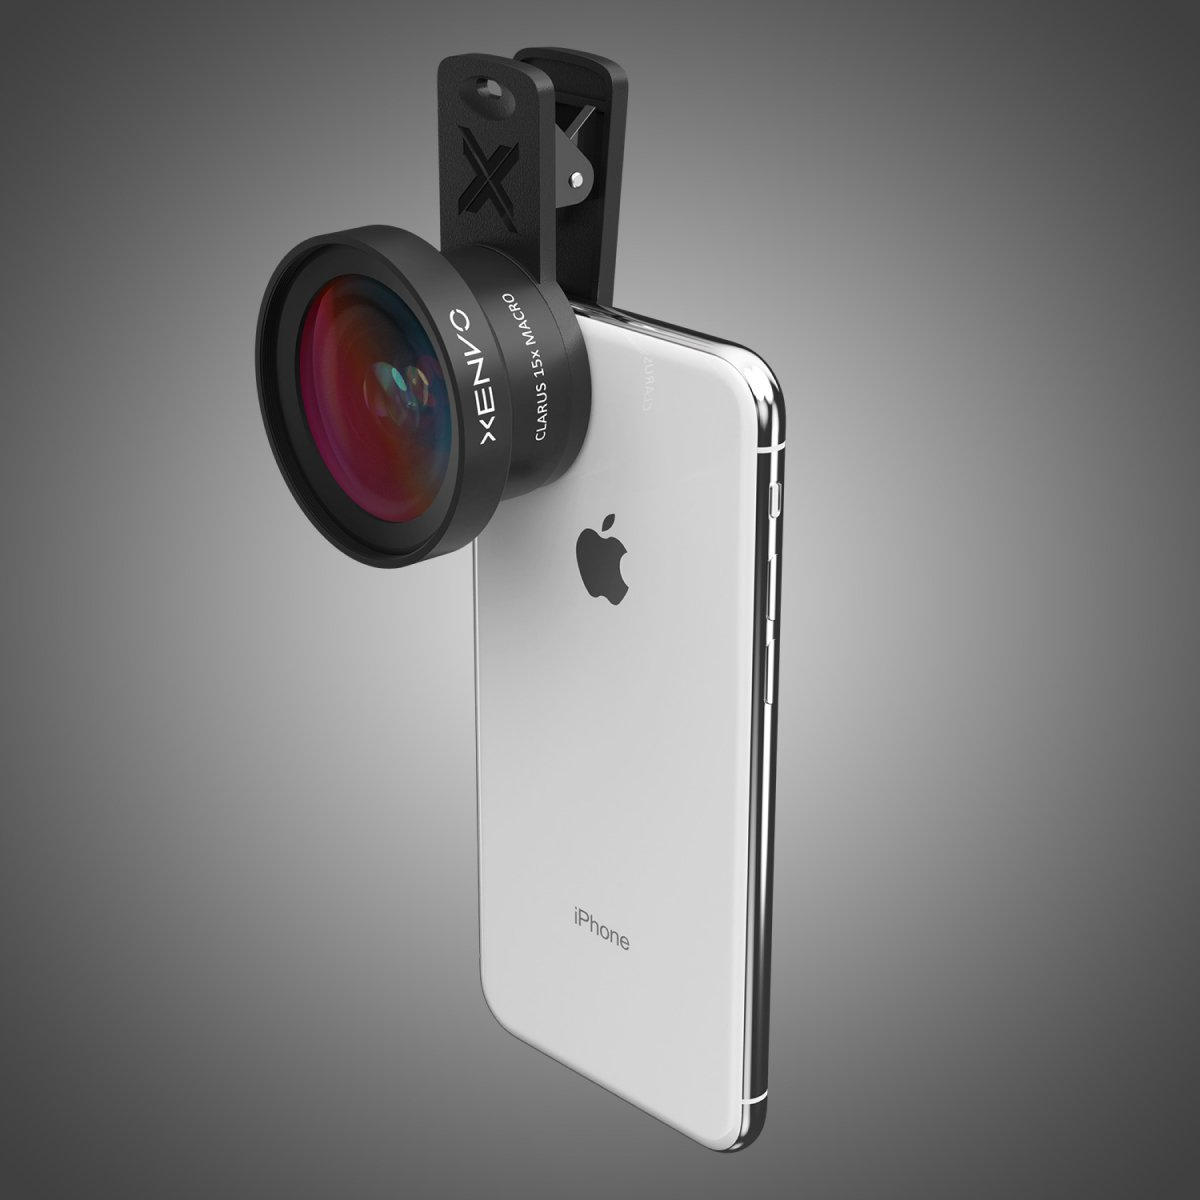 A photo of the Xenvo Pro Lens Kit attached to an iPhone.